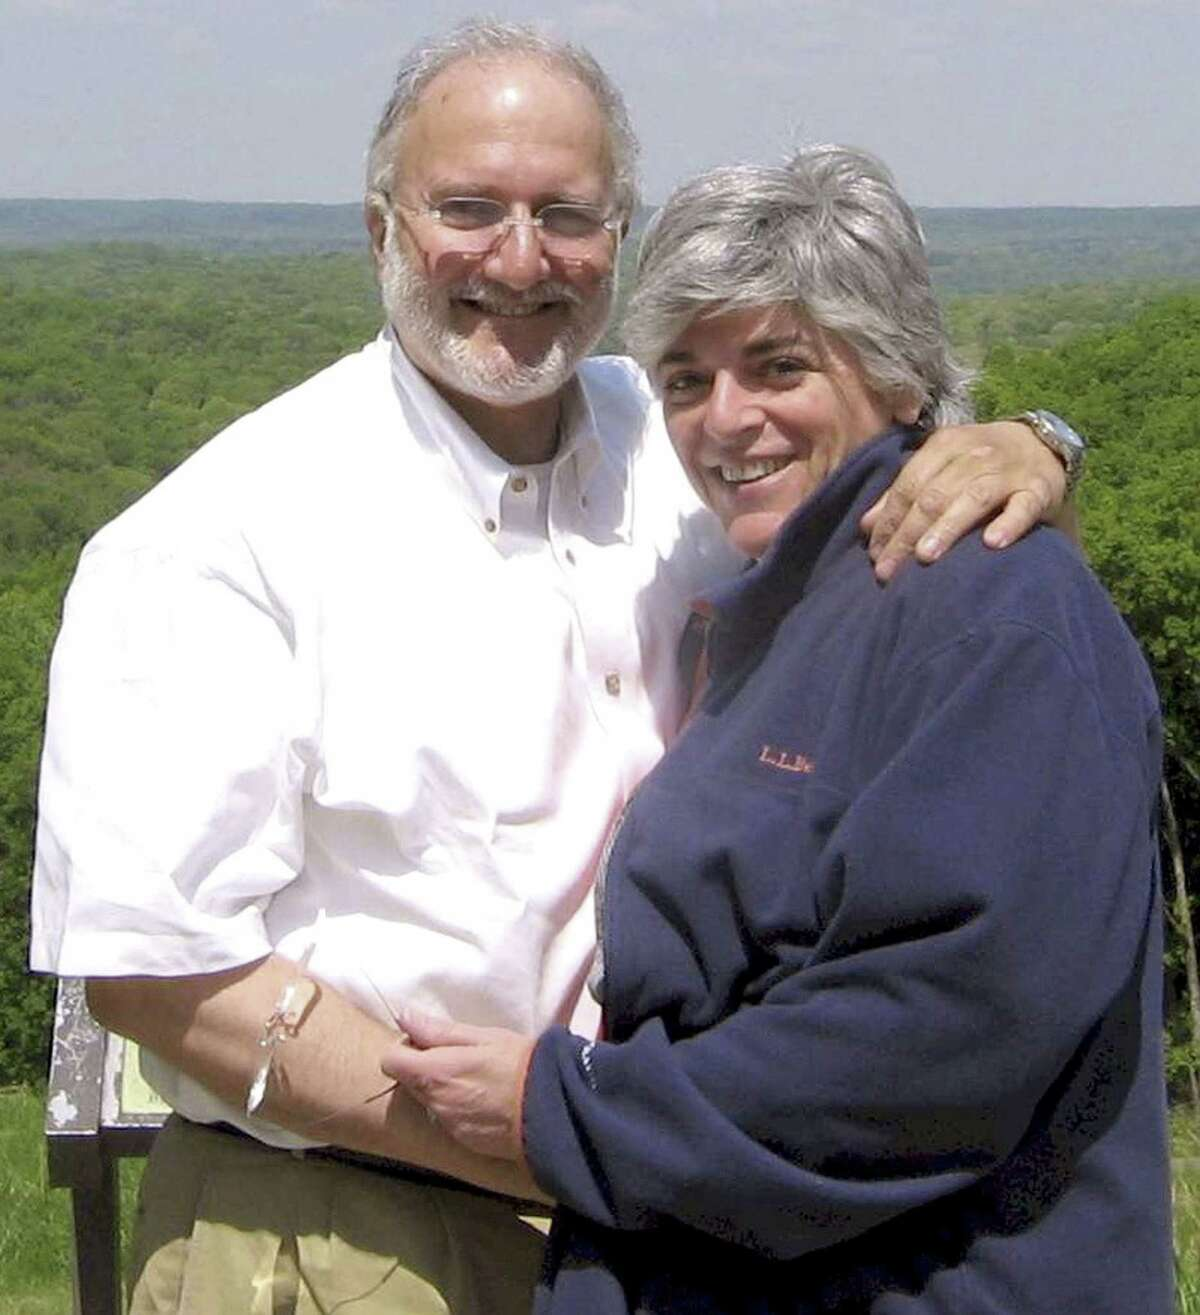 FILE - In this file handout photo provided by the Gross family shows Alan and Judy Gross in an unknown location. Five years to the day after his arrest in Cuba on espionage charges, former U.S. contractor Alan Gross is threatening a hunger strike, refusing almost all visitors and predicting he will die in prison if he isnít freed by his 66th birthday in May, relatives and backers said Wednesday, Dec. 3, 2014. (AP Photo/Gross Family, File)